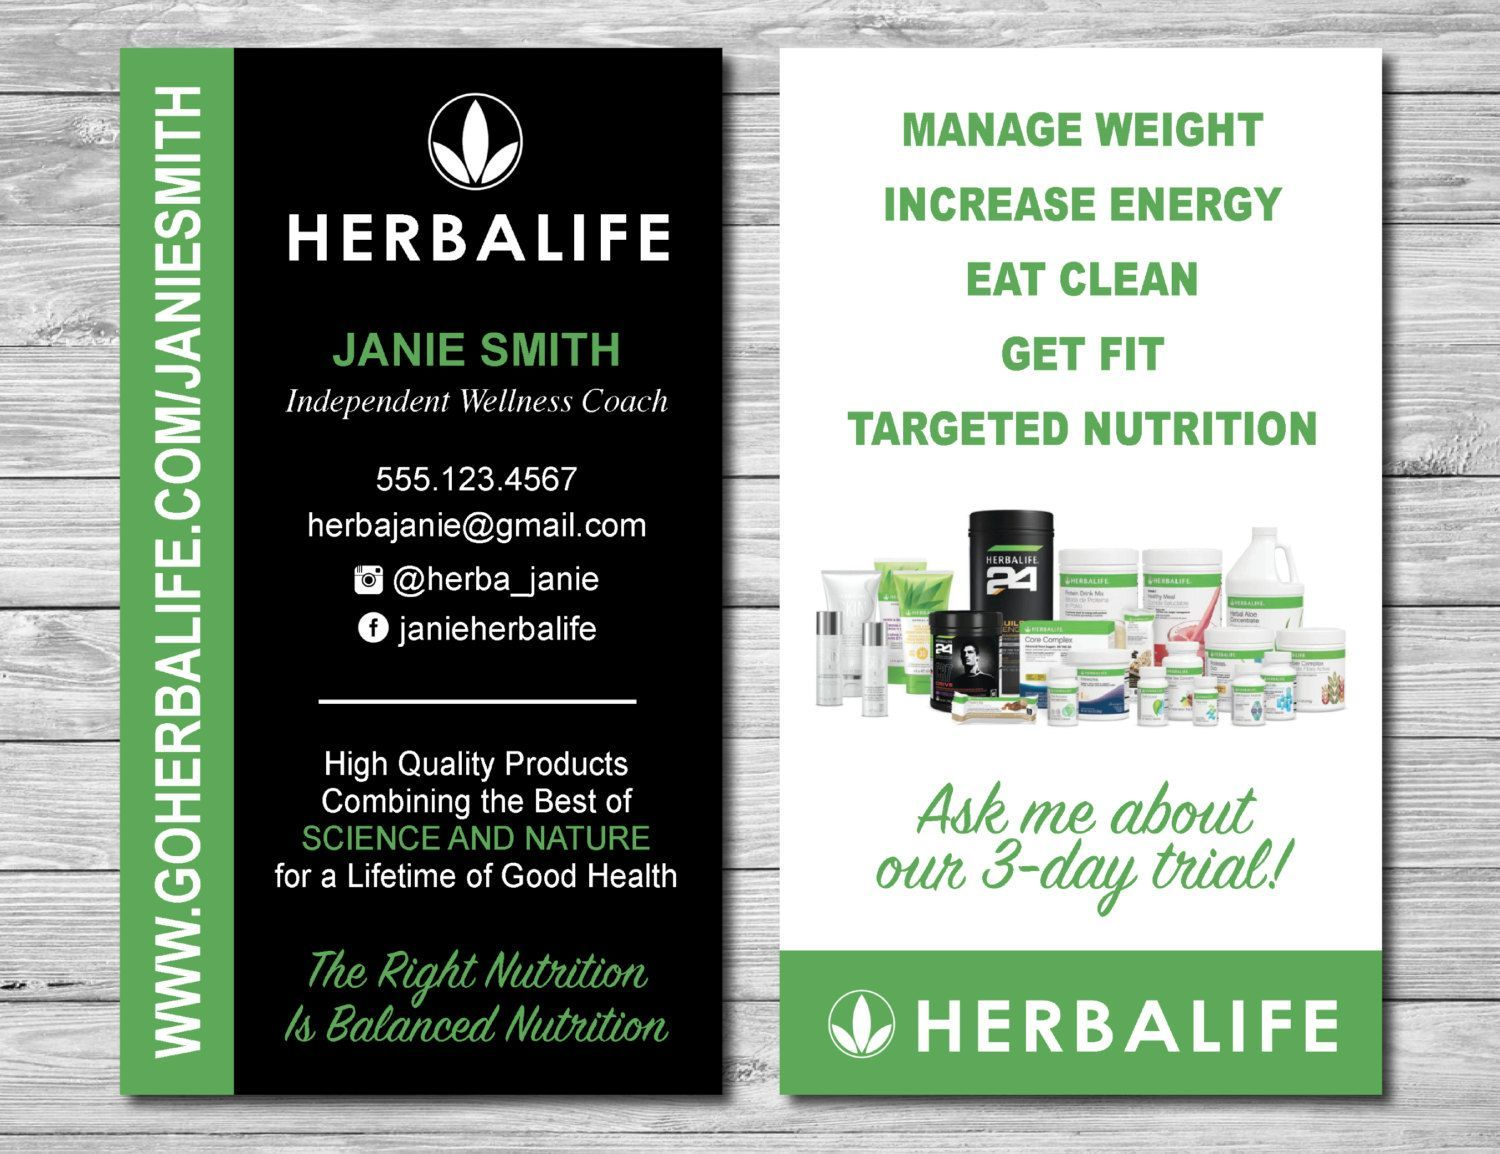 Herbalife Business Cards For Wellness Coach And Distributor By Kellibdesignstudio Herbalife Business Card Templates Herbalife Business Cards Herbalife Business